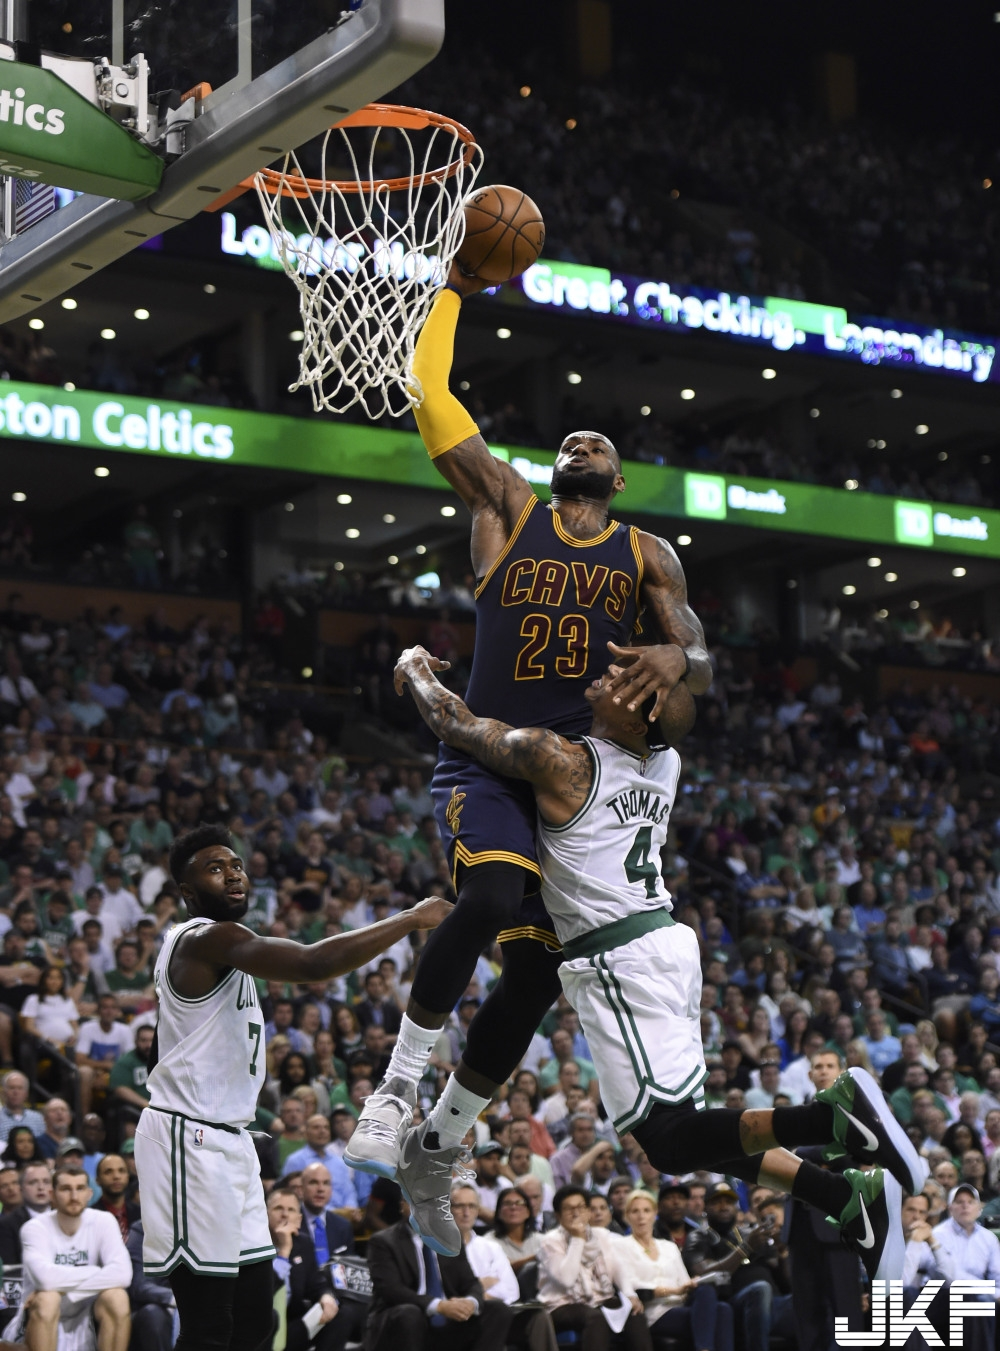 usp_nba__playoffs-cleveland_cavaliers_at_boston_ce_90979978.jpg